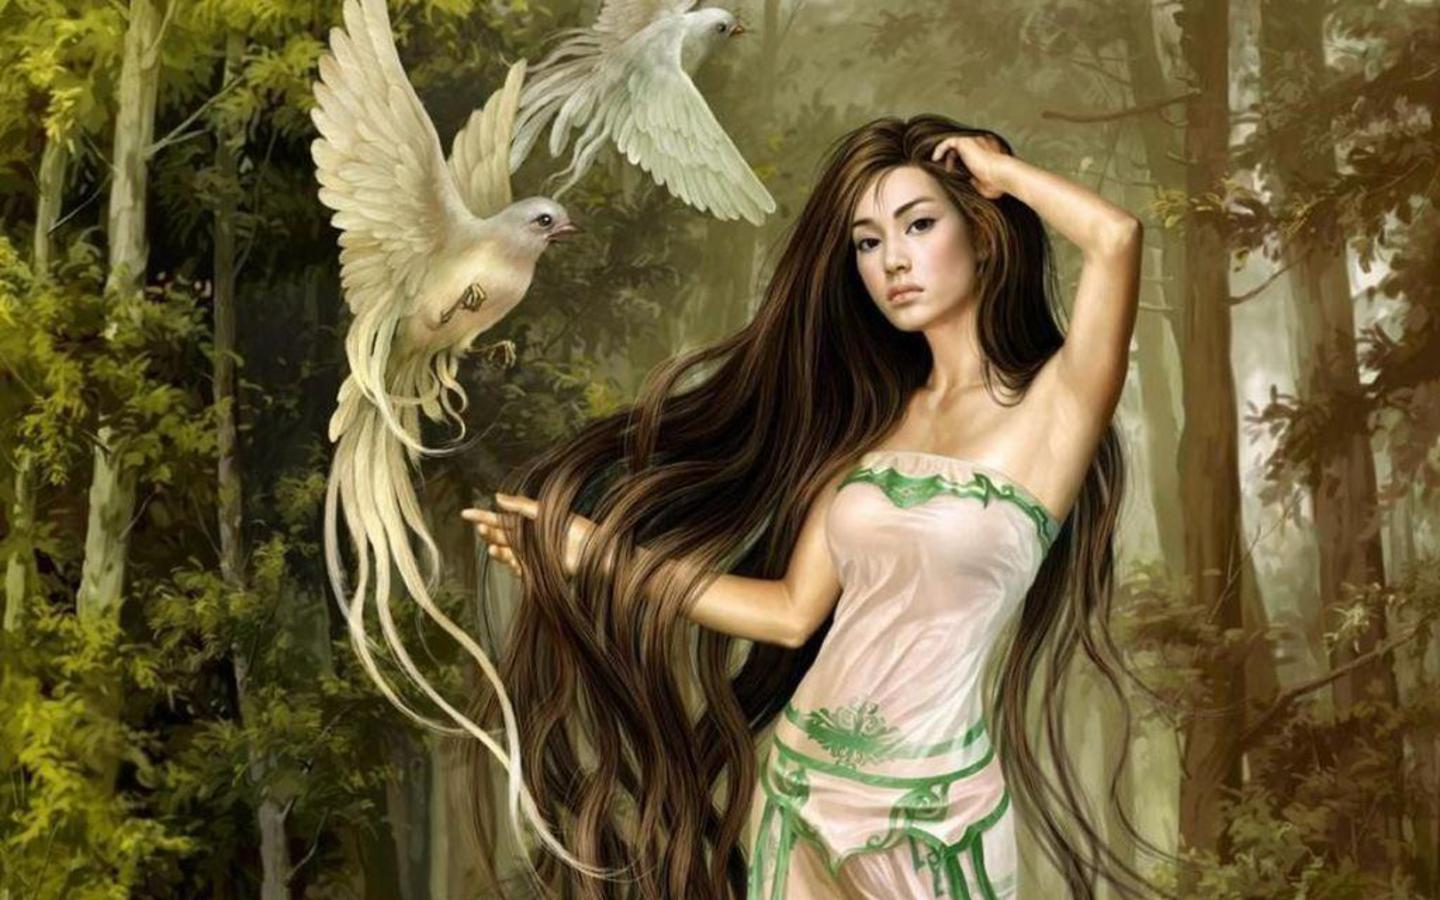 Beautiful Fantasy Girls HQ wallpapers 1440x900 free Download | PIXHOME